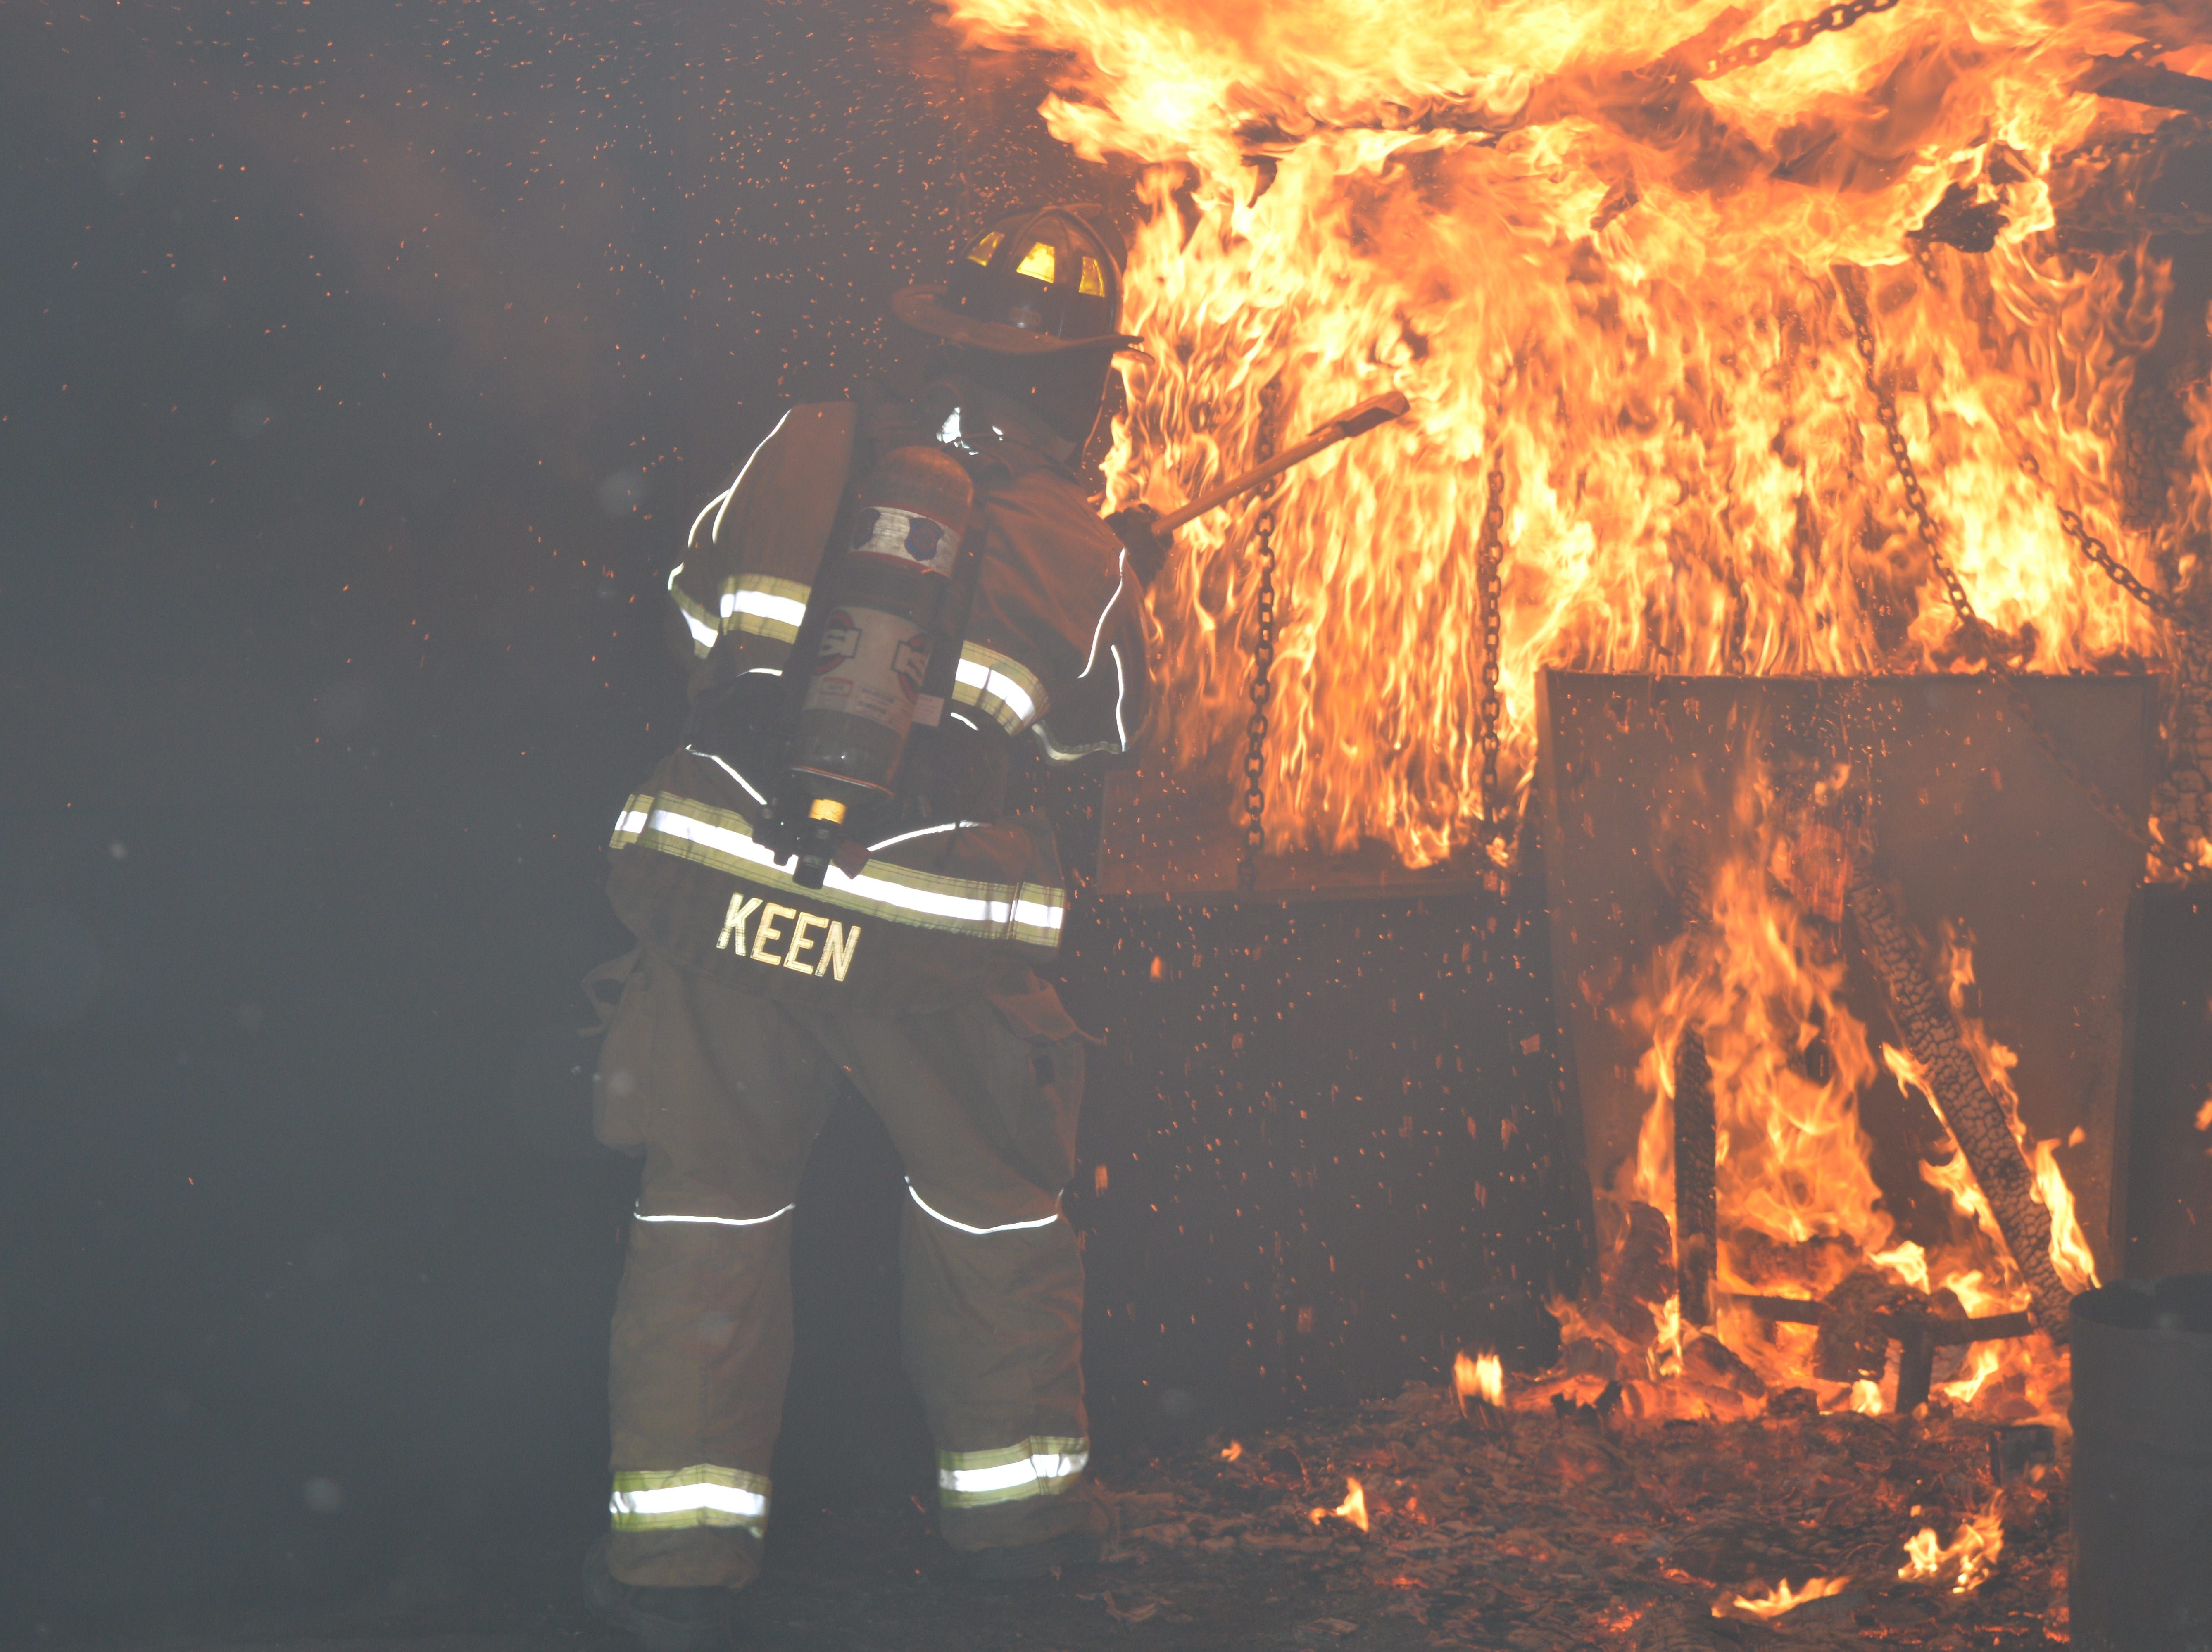 A Livonia firefighter tames a live burn inside a chamber on Saturday, May 4, 2019.